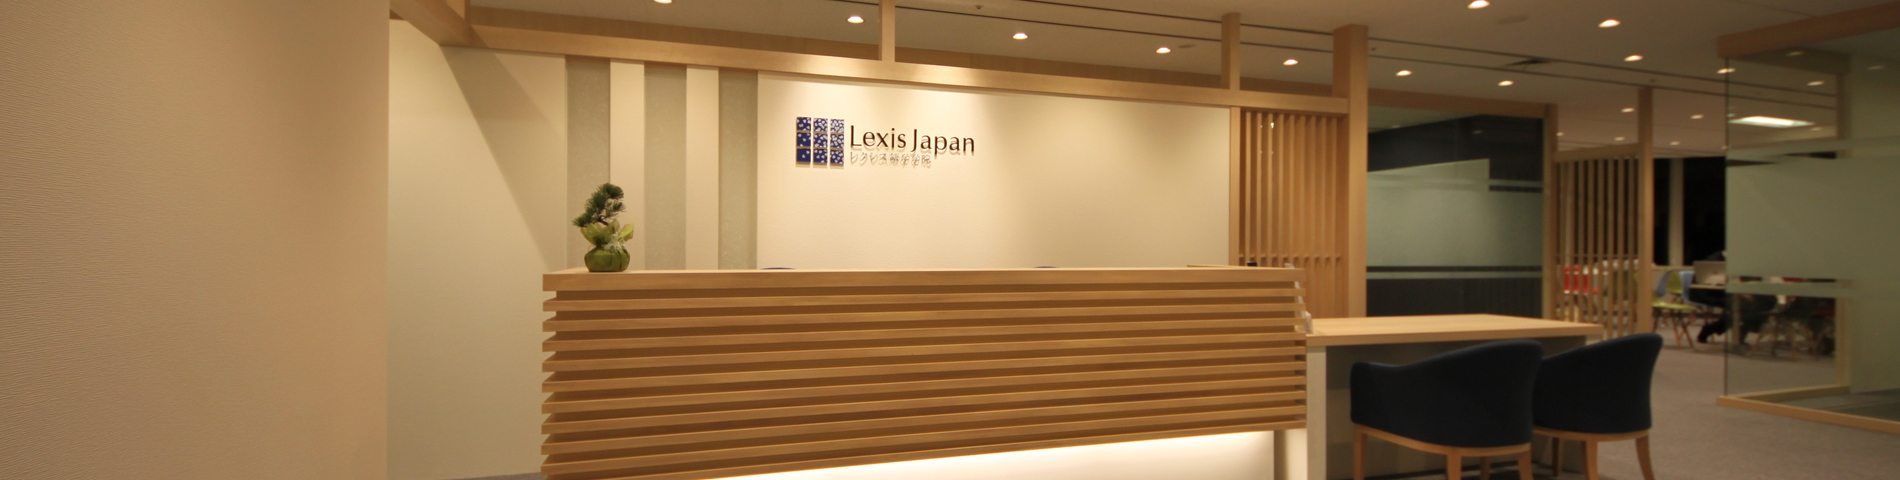 Lexis Japan picture 1